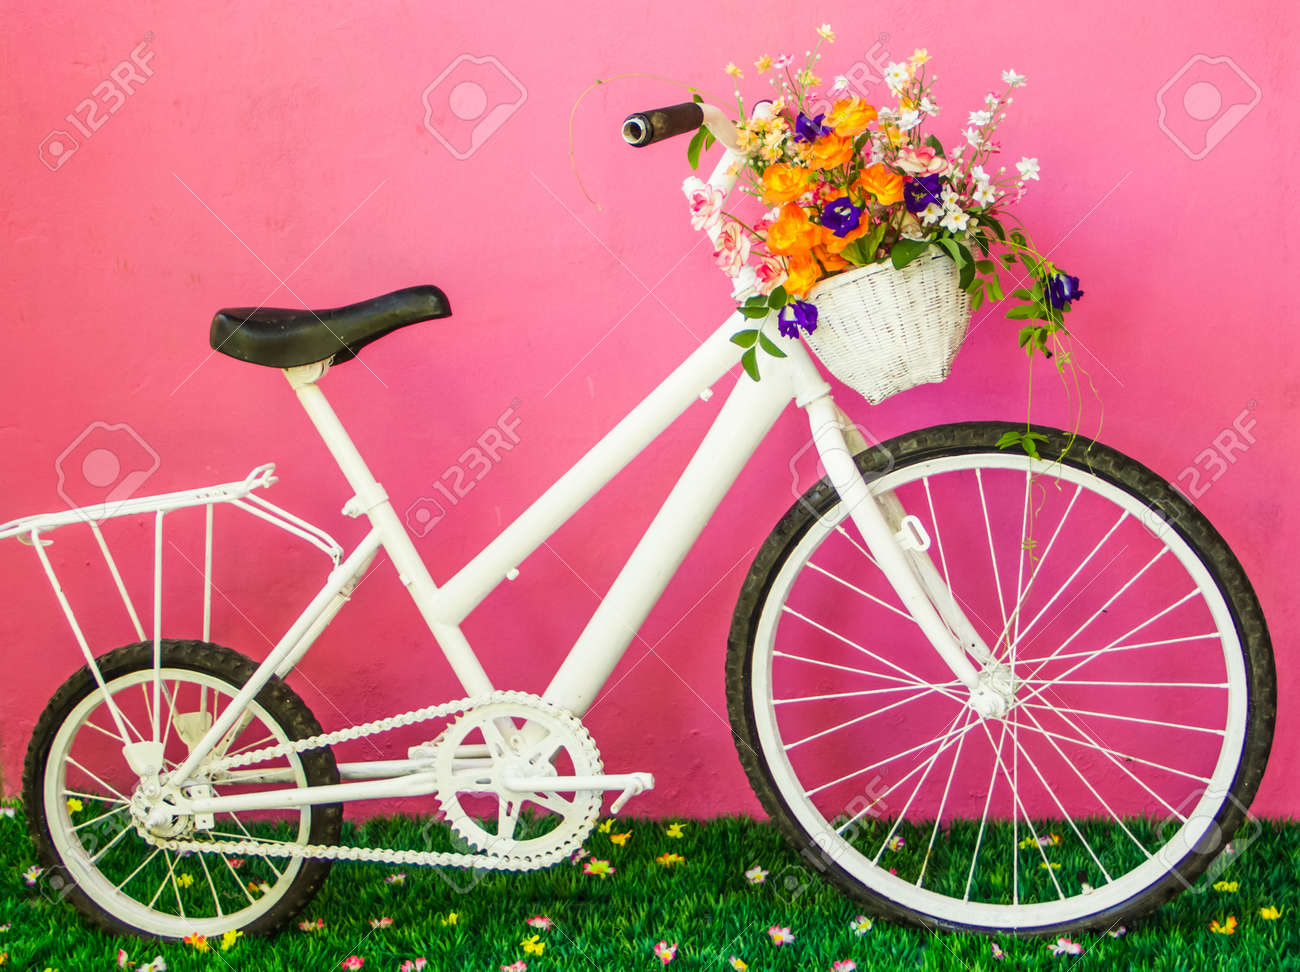 White vintage bicycle with flowers on the pink wall. - 23909693